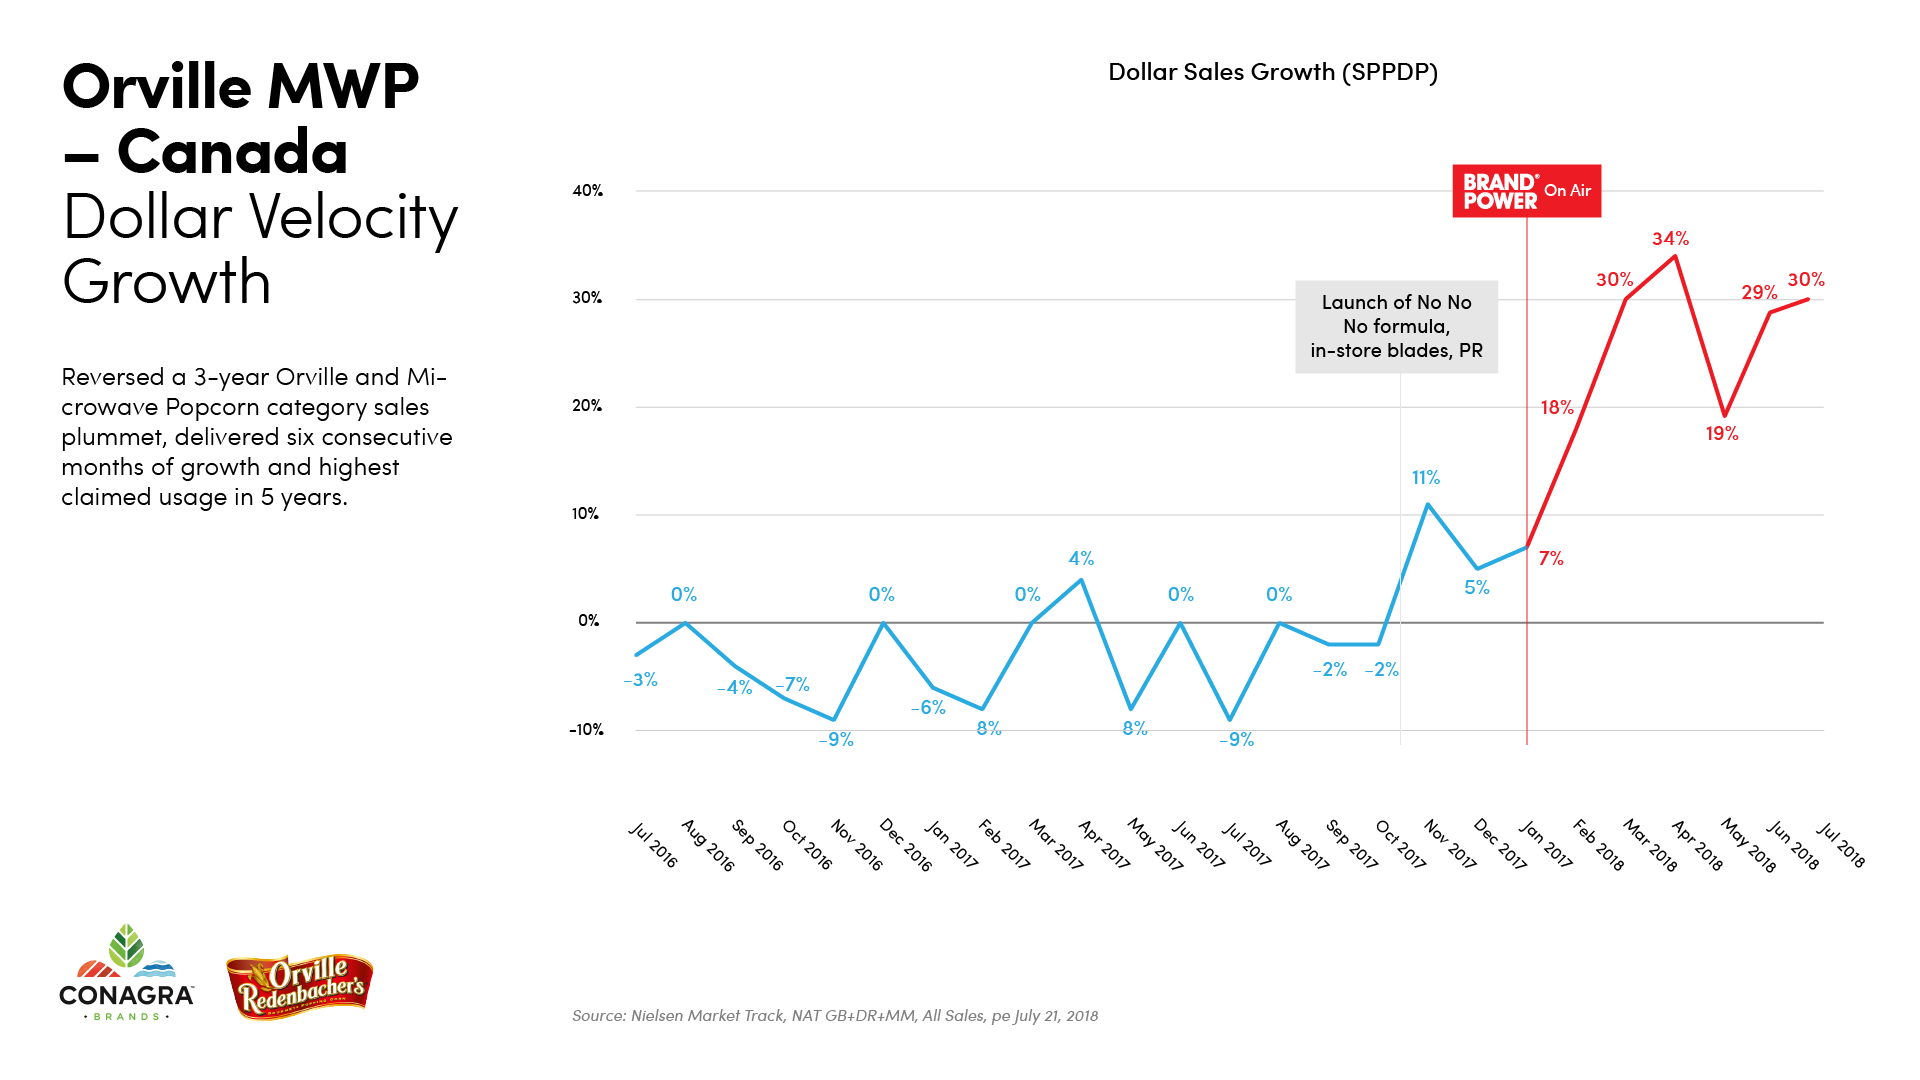 BrandPower_Charts_Orville_DollarVelocity.png